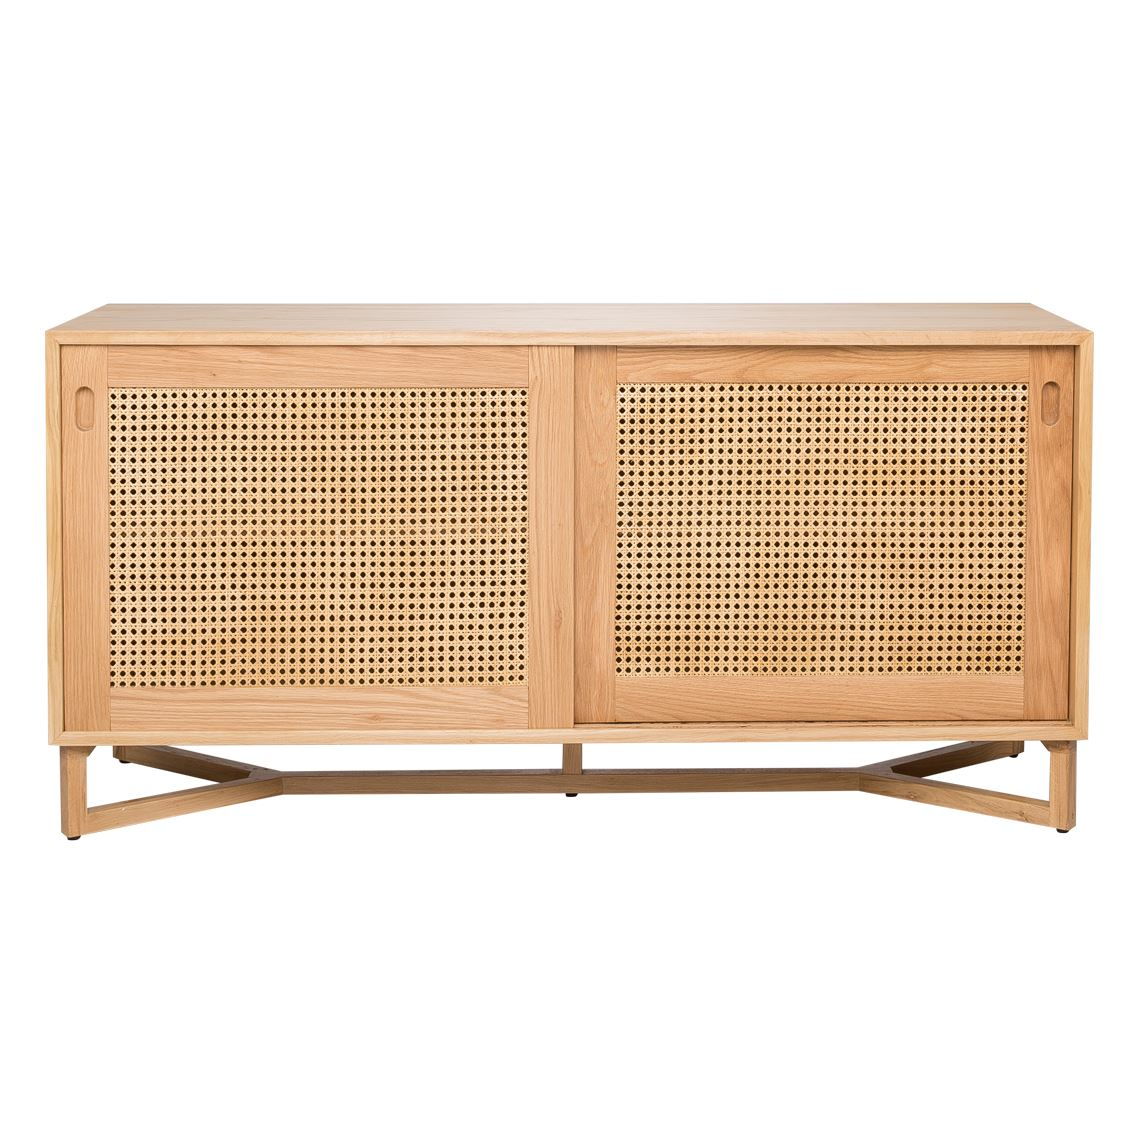 freedom furniture and homewares raffles door buffet outdoor sideboard table small modern console folding side big green egg outside patio cover inch round tablecloth hot water